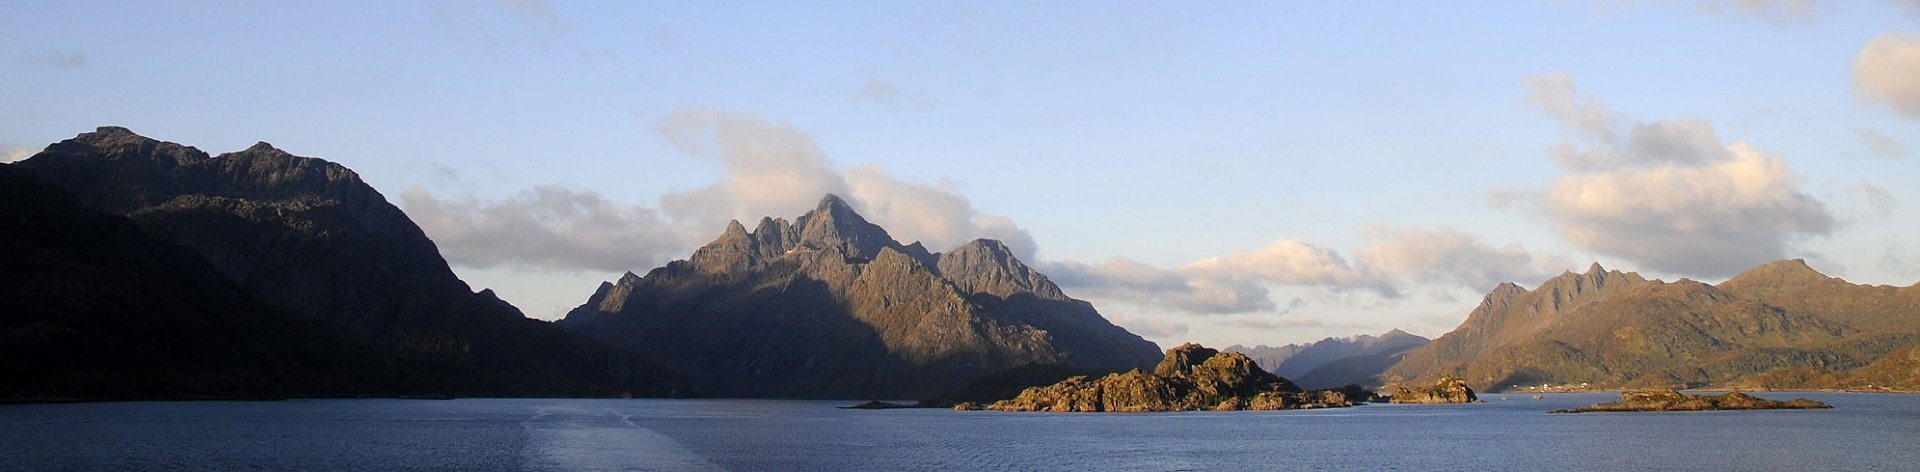 Traumarchipel Lofoten